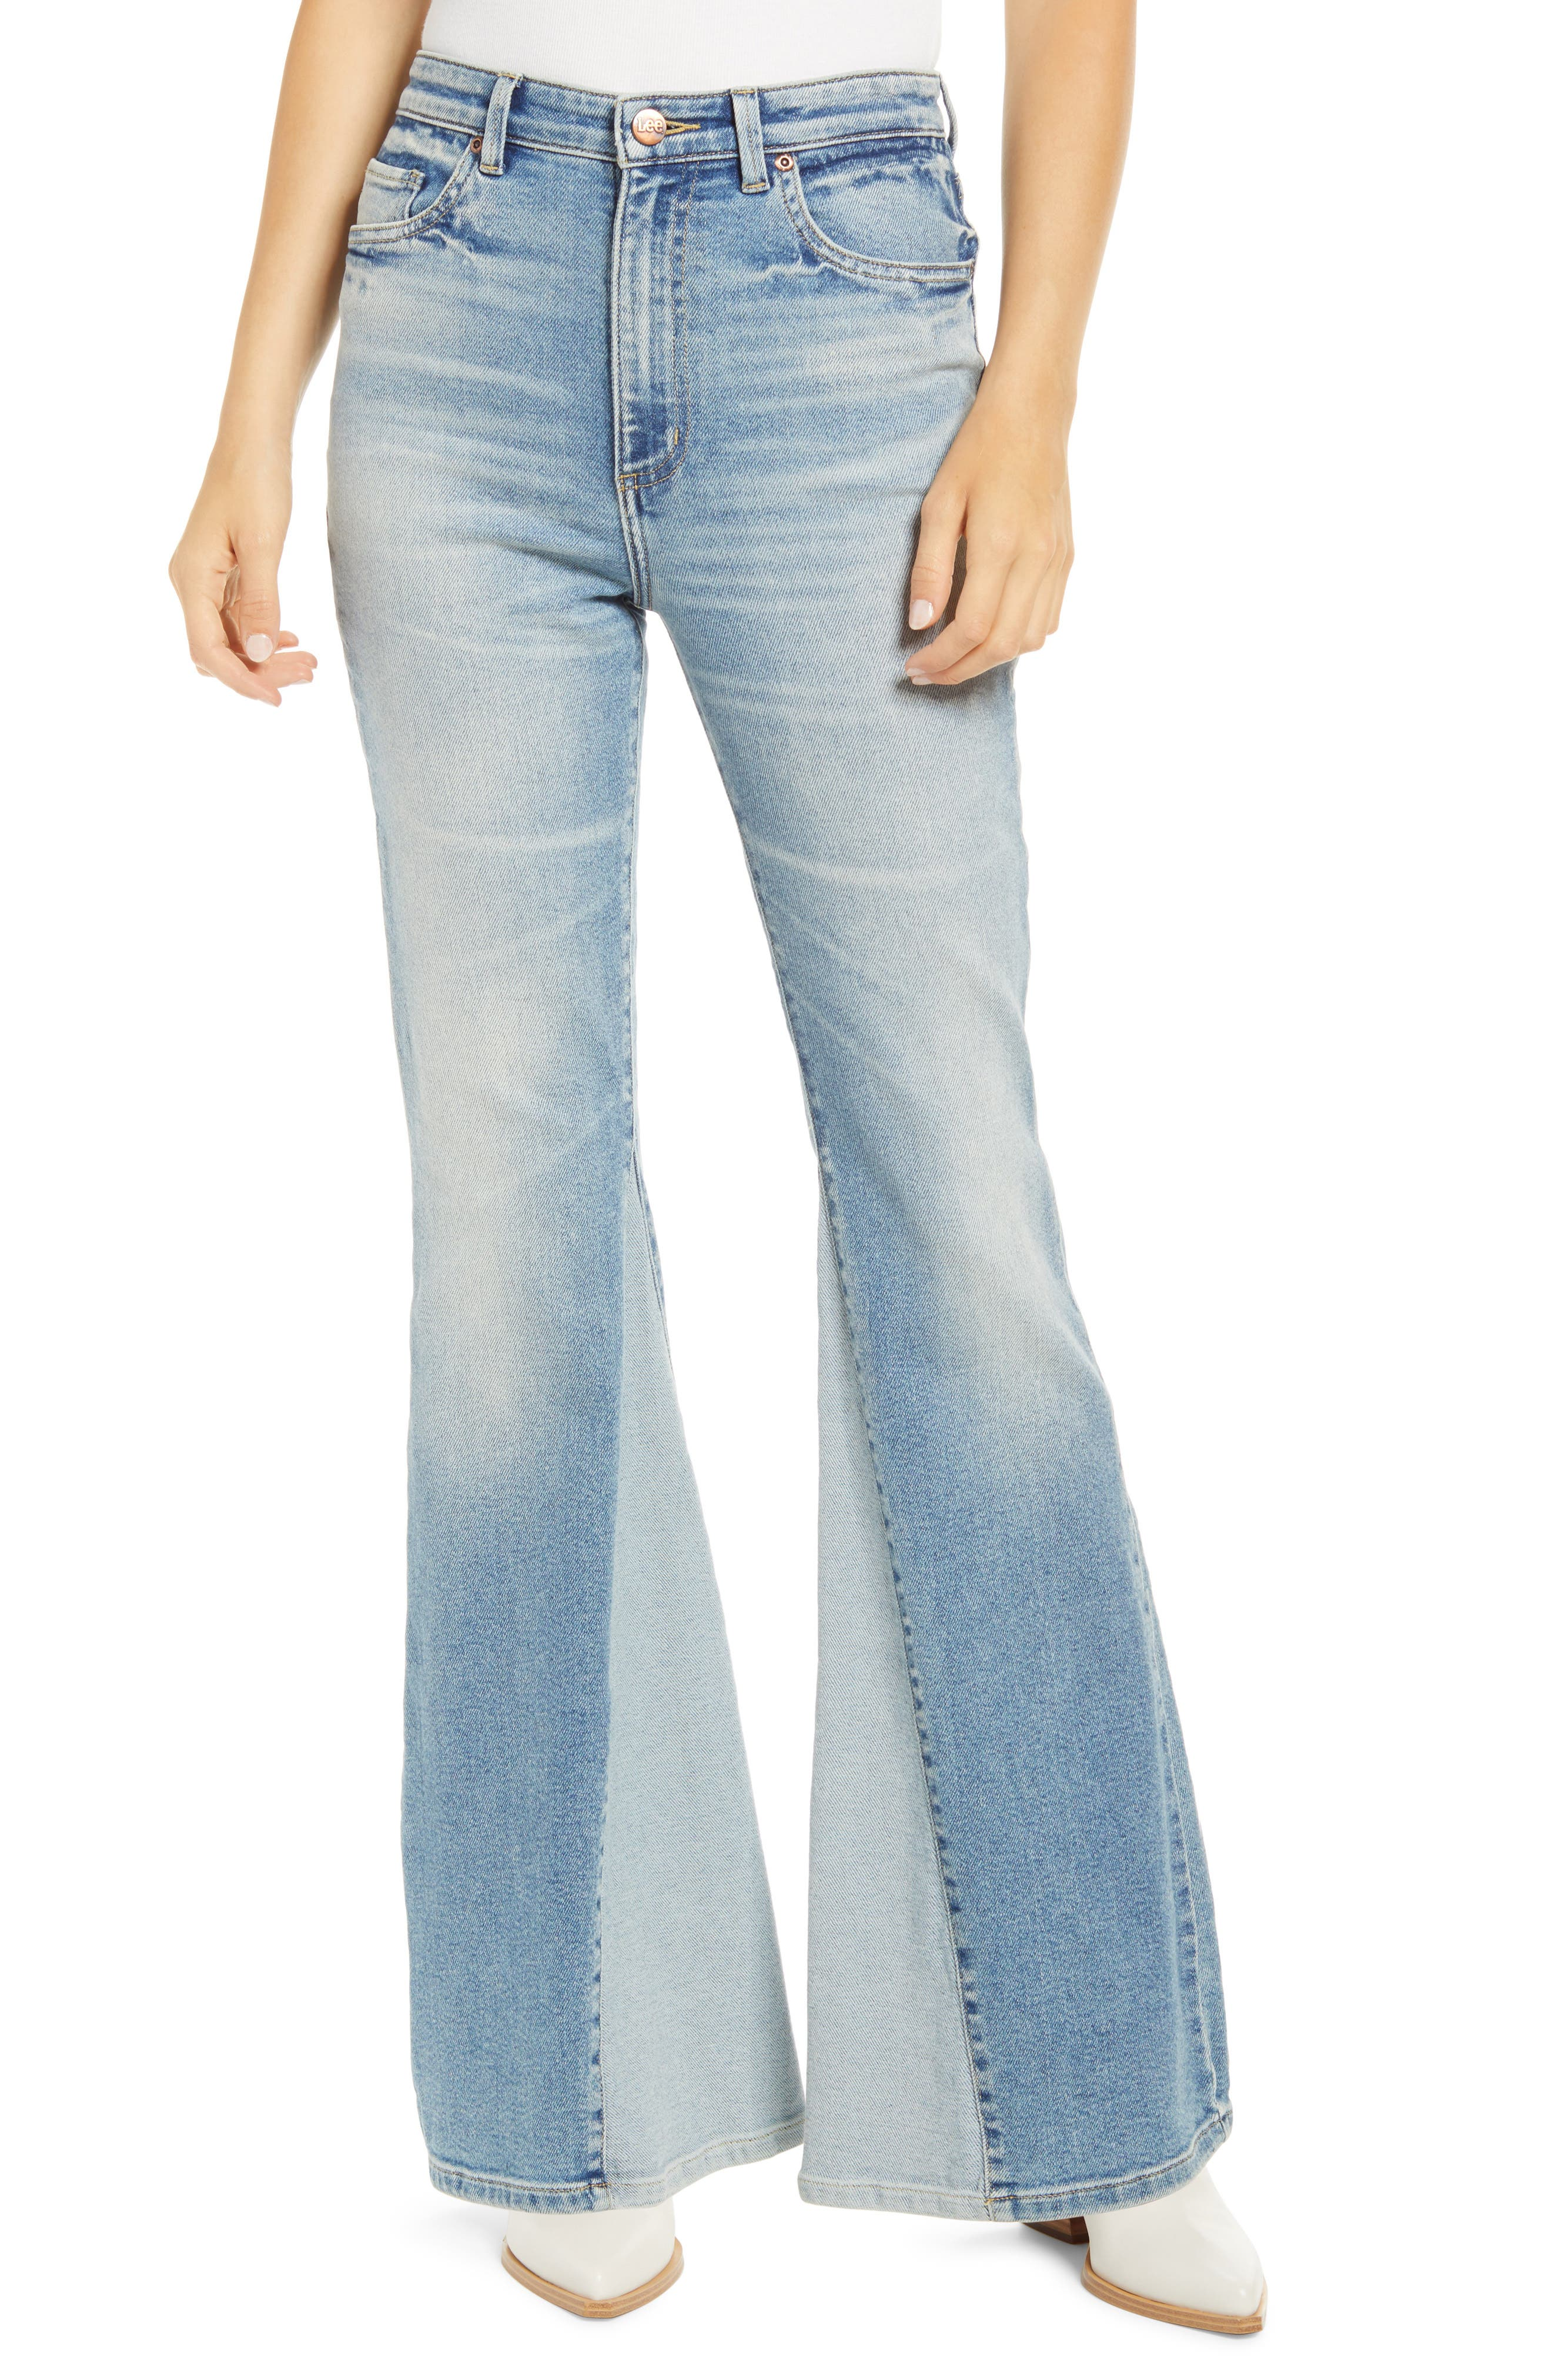 60s – 70s Pants, Jeans, Hippie, Bell Bottoms, Jumpsuits Womens Lee Inseam Panel High Waist Flare Jeans $108.00 AT vintagedancer.com